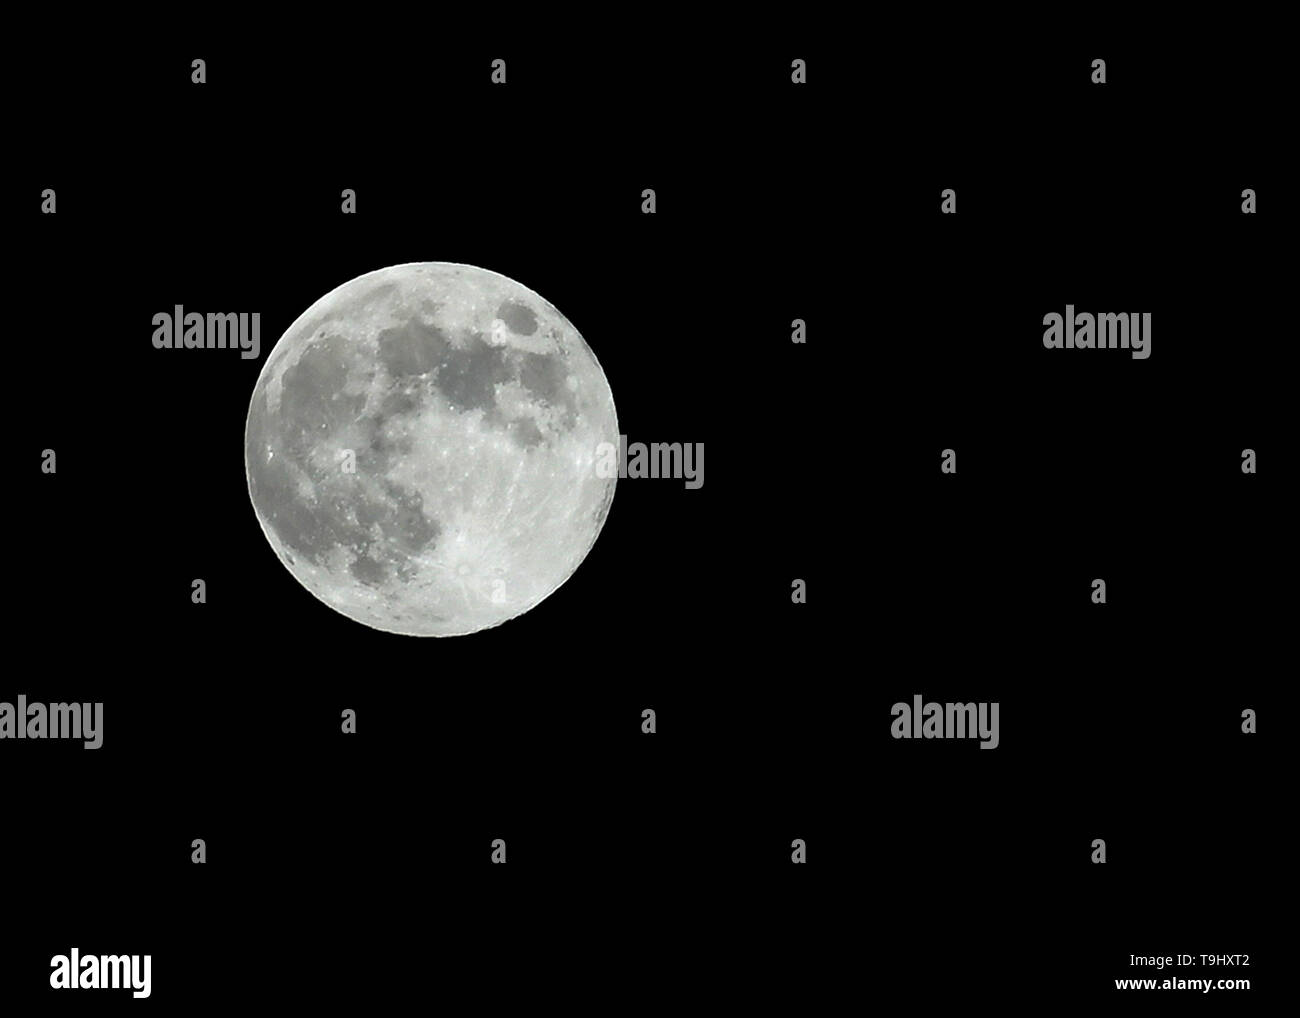 Damascus, Syria  18th May, 2019  A full moon appears in the